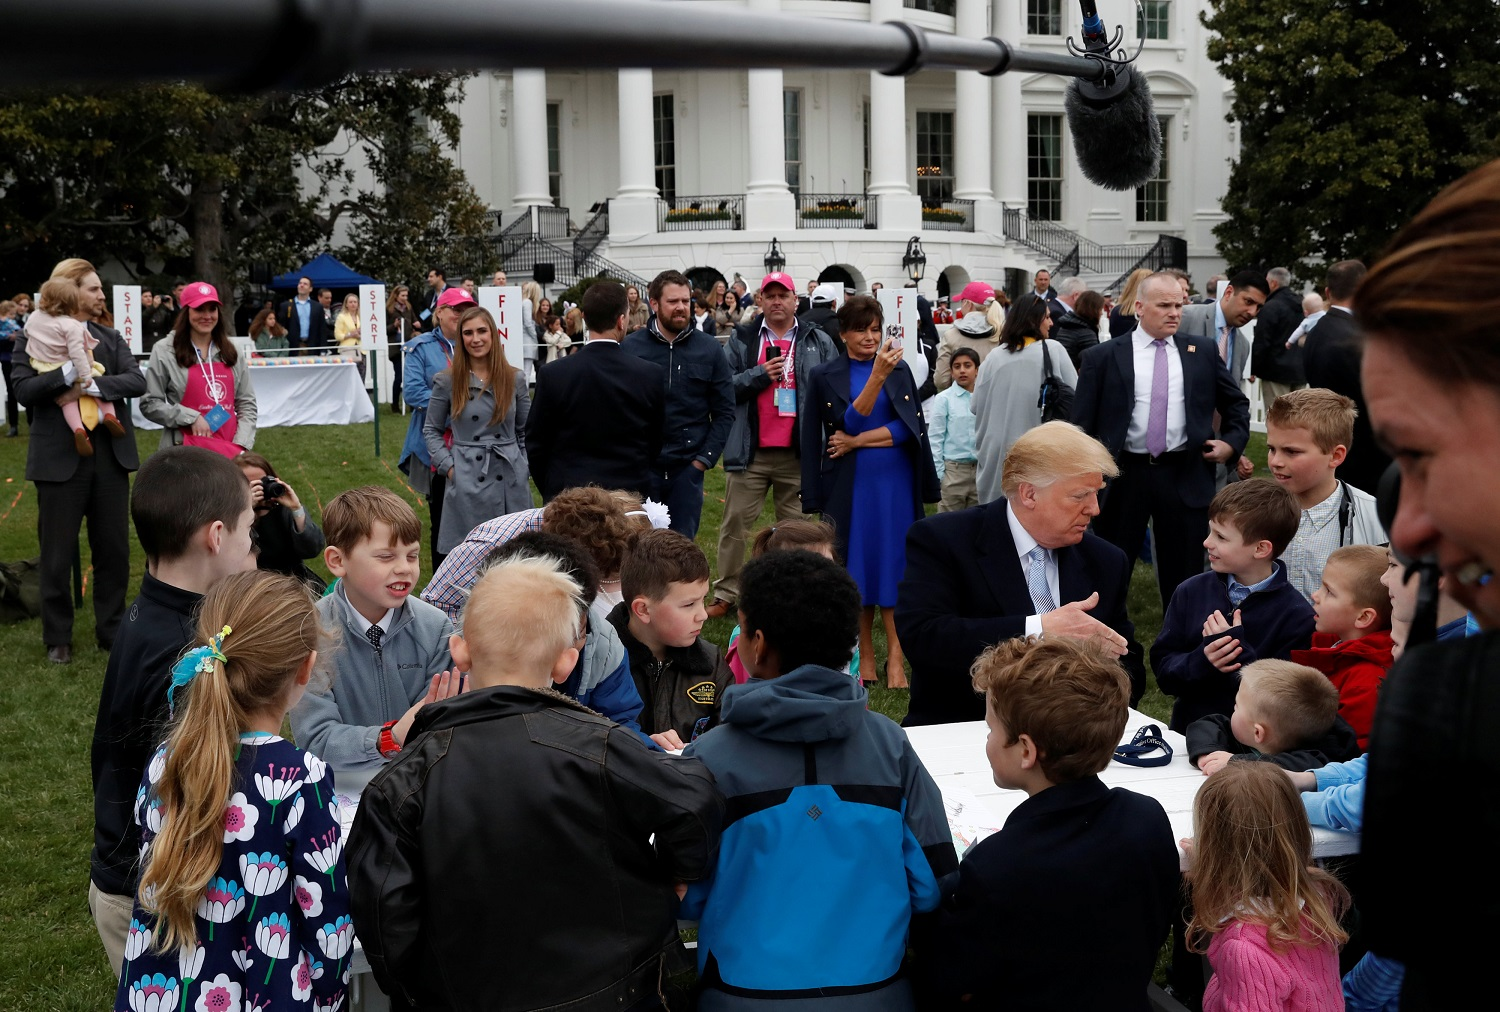 U.S. President Donald Trump greets children after they made drawings for U.S. military members during the annual White House Easter Egg Roll on the South Lawn of the White House in Washington, April 2, 2018. REUTERS/Leah Millis